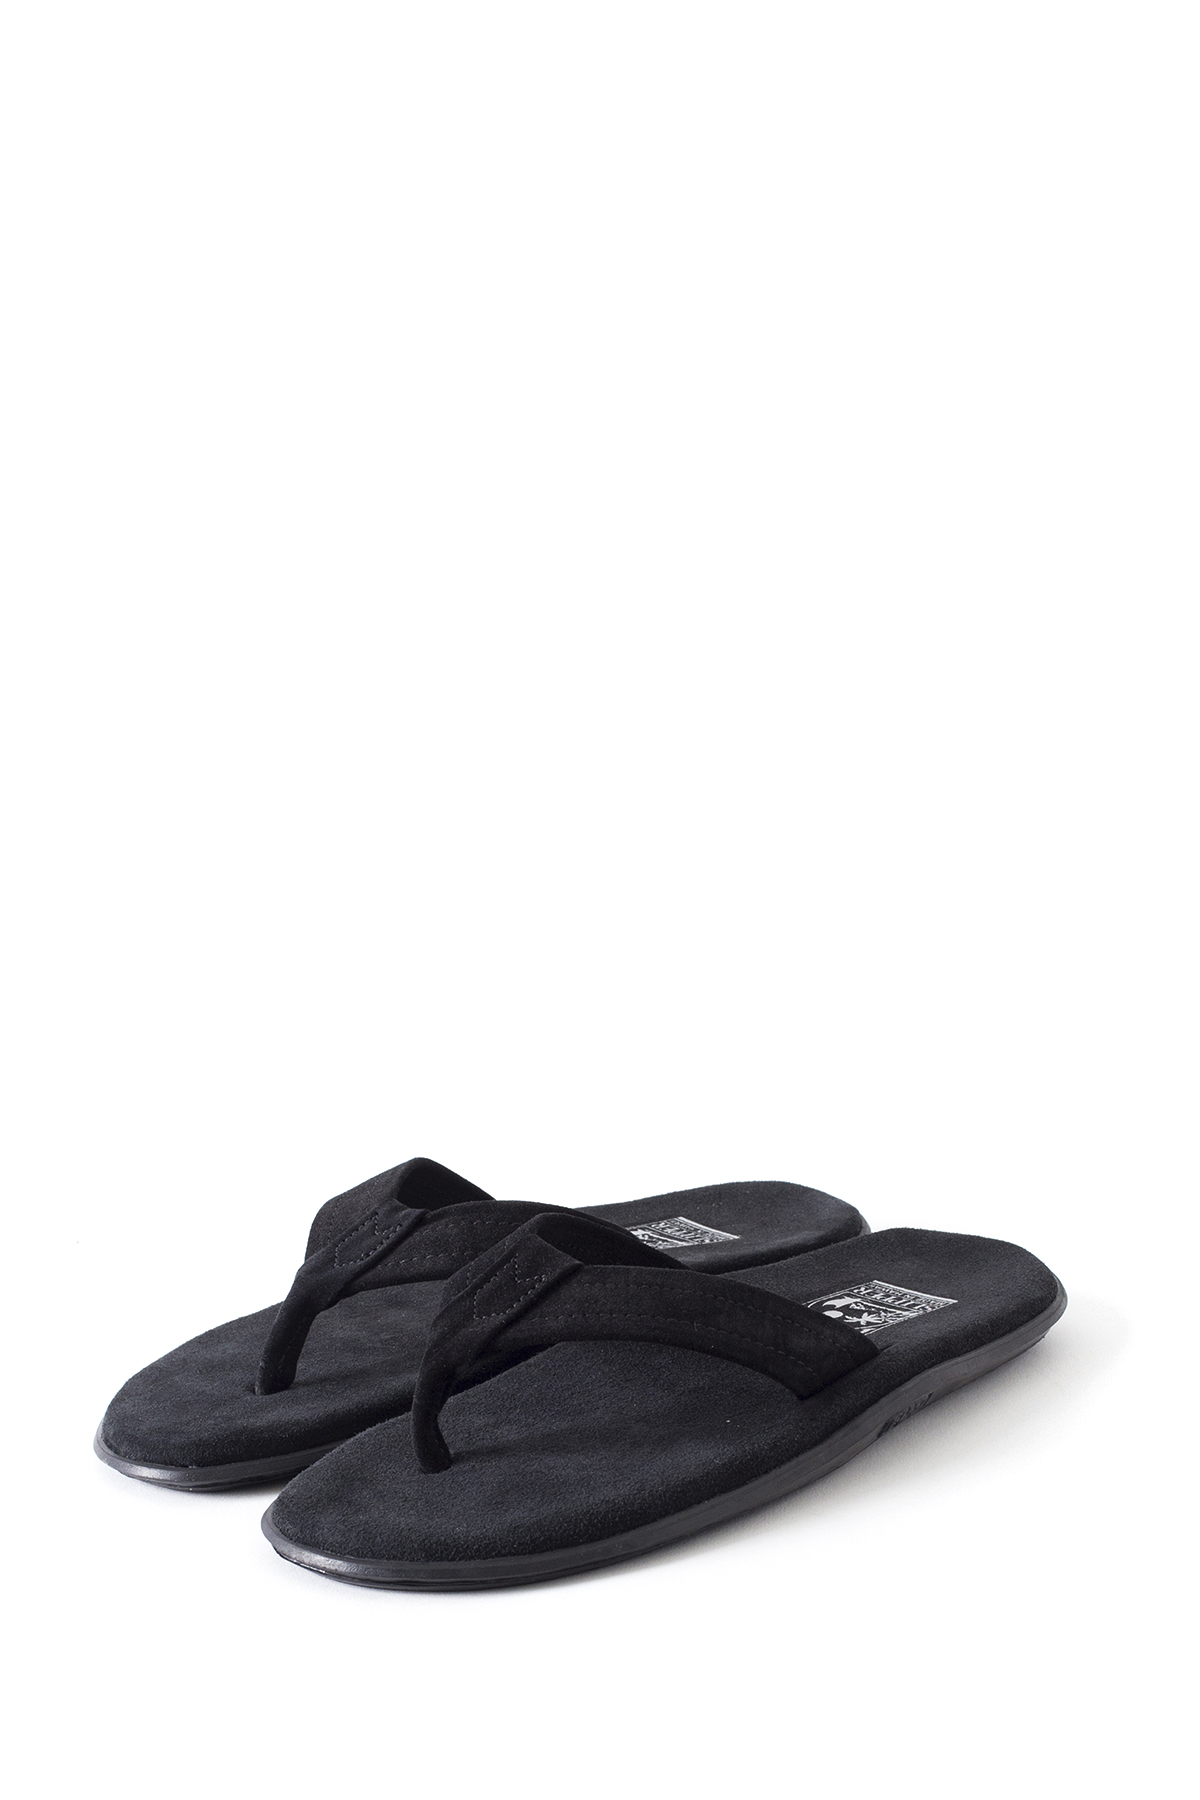 ISLAND SLIPPER : PB203 (Suede / Black)